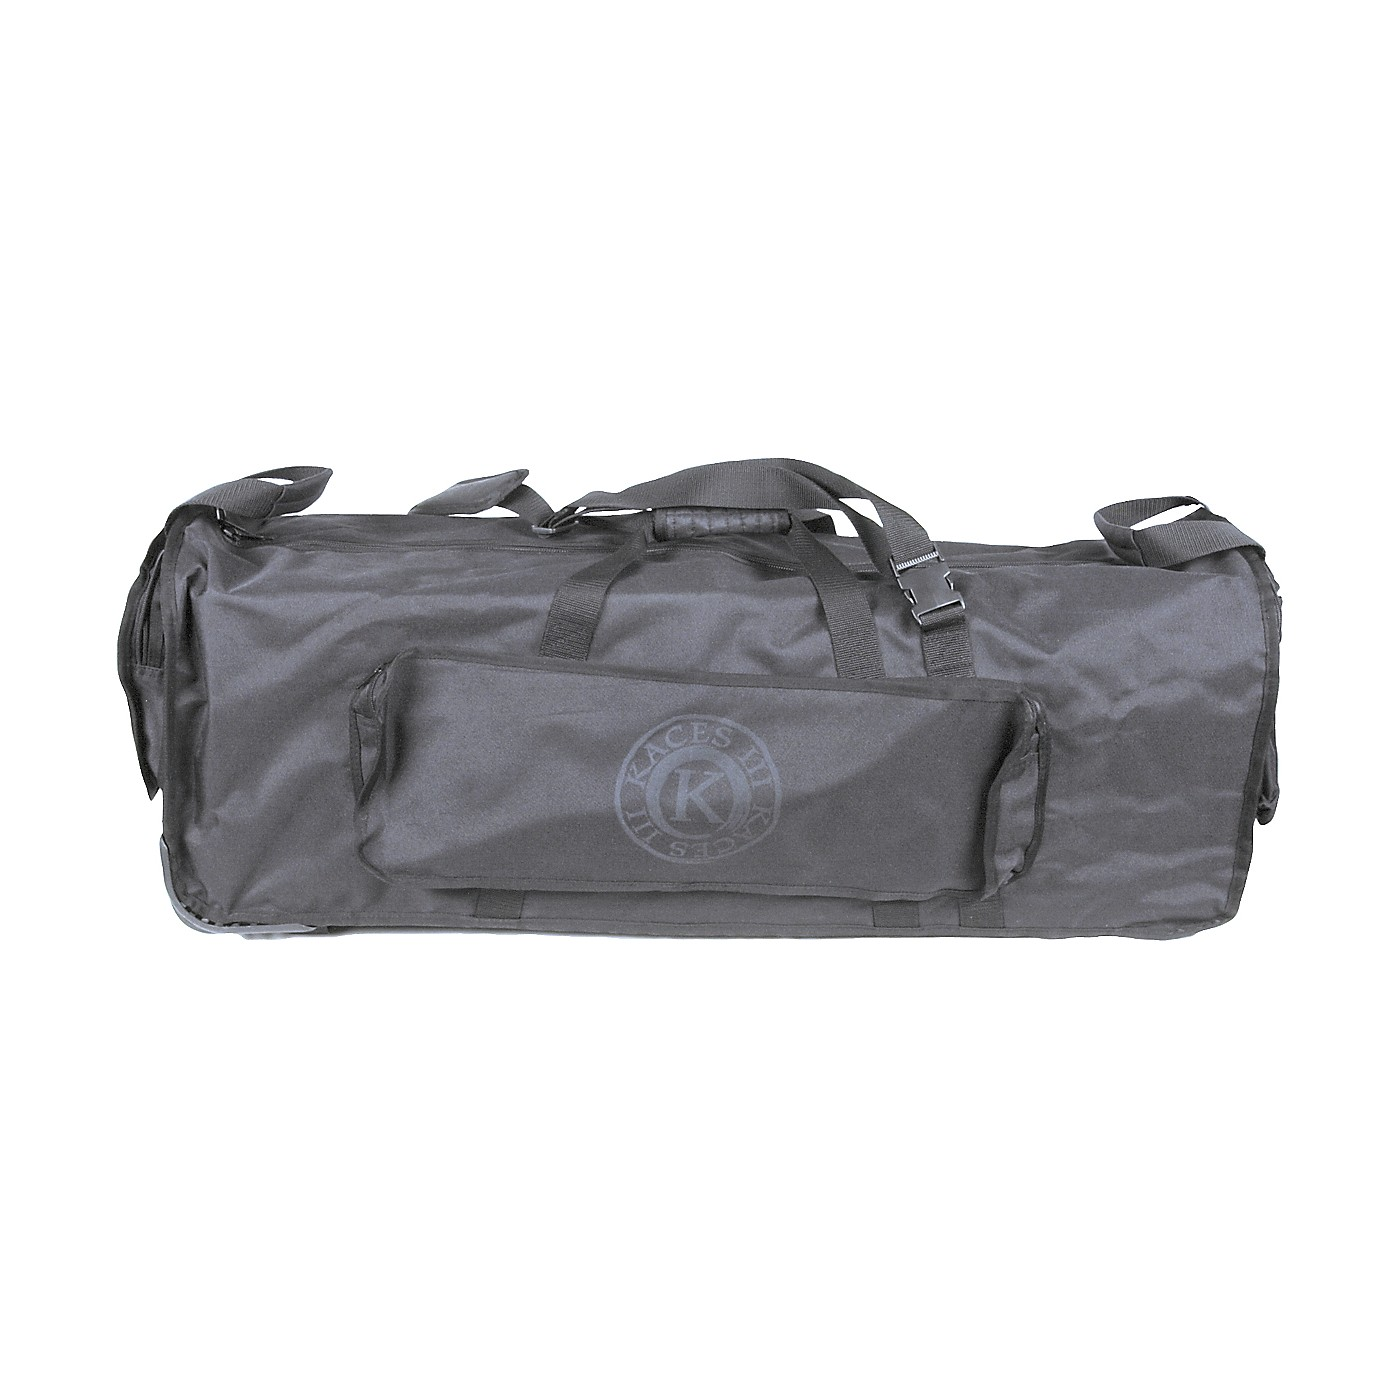 Kaces Drum Hardware Bag with Wheels thumbnail